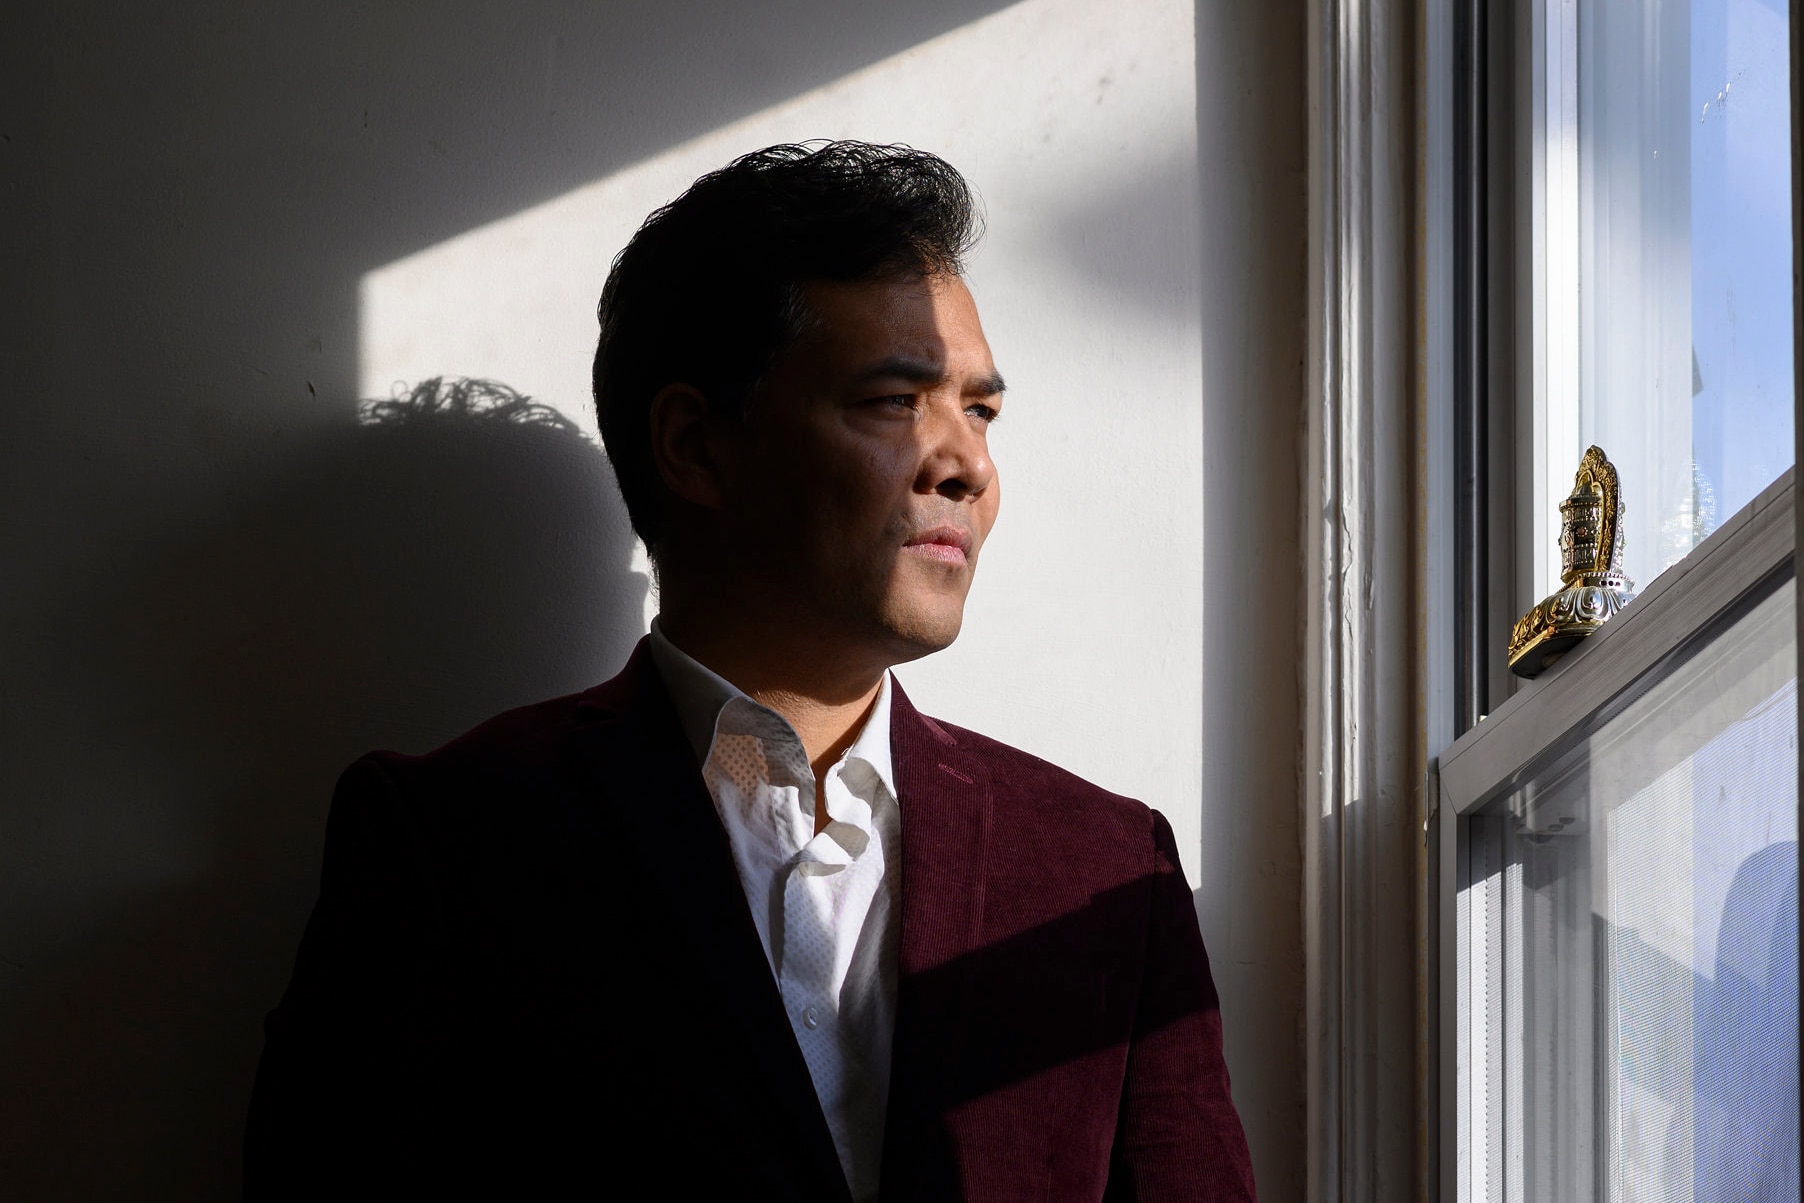 Tahir Imin, an Uighur whose blood was drawn, his face scanned and his voice recorded by authorities in China's Xinjiang region, in Washington